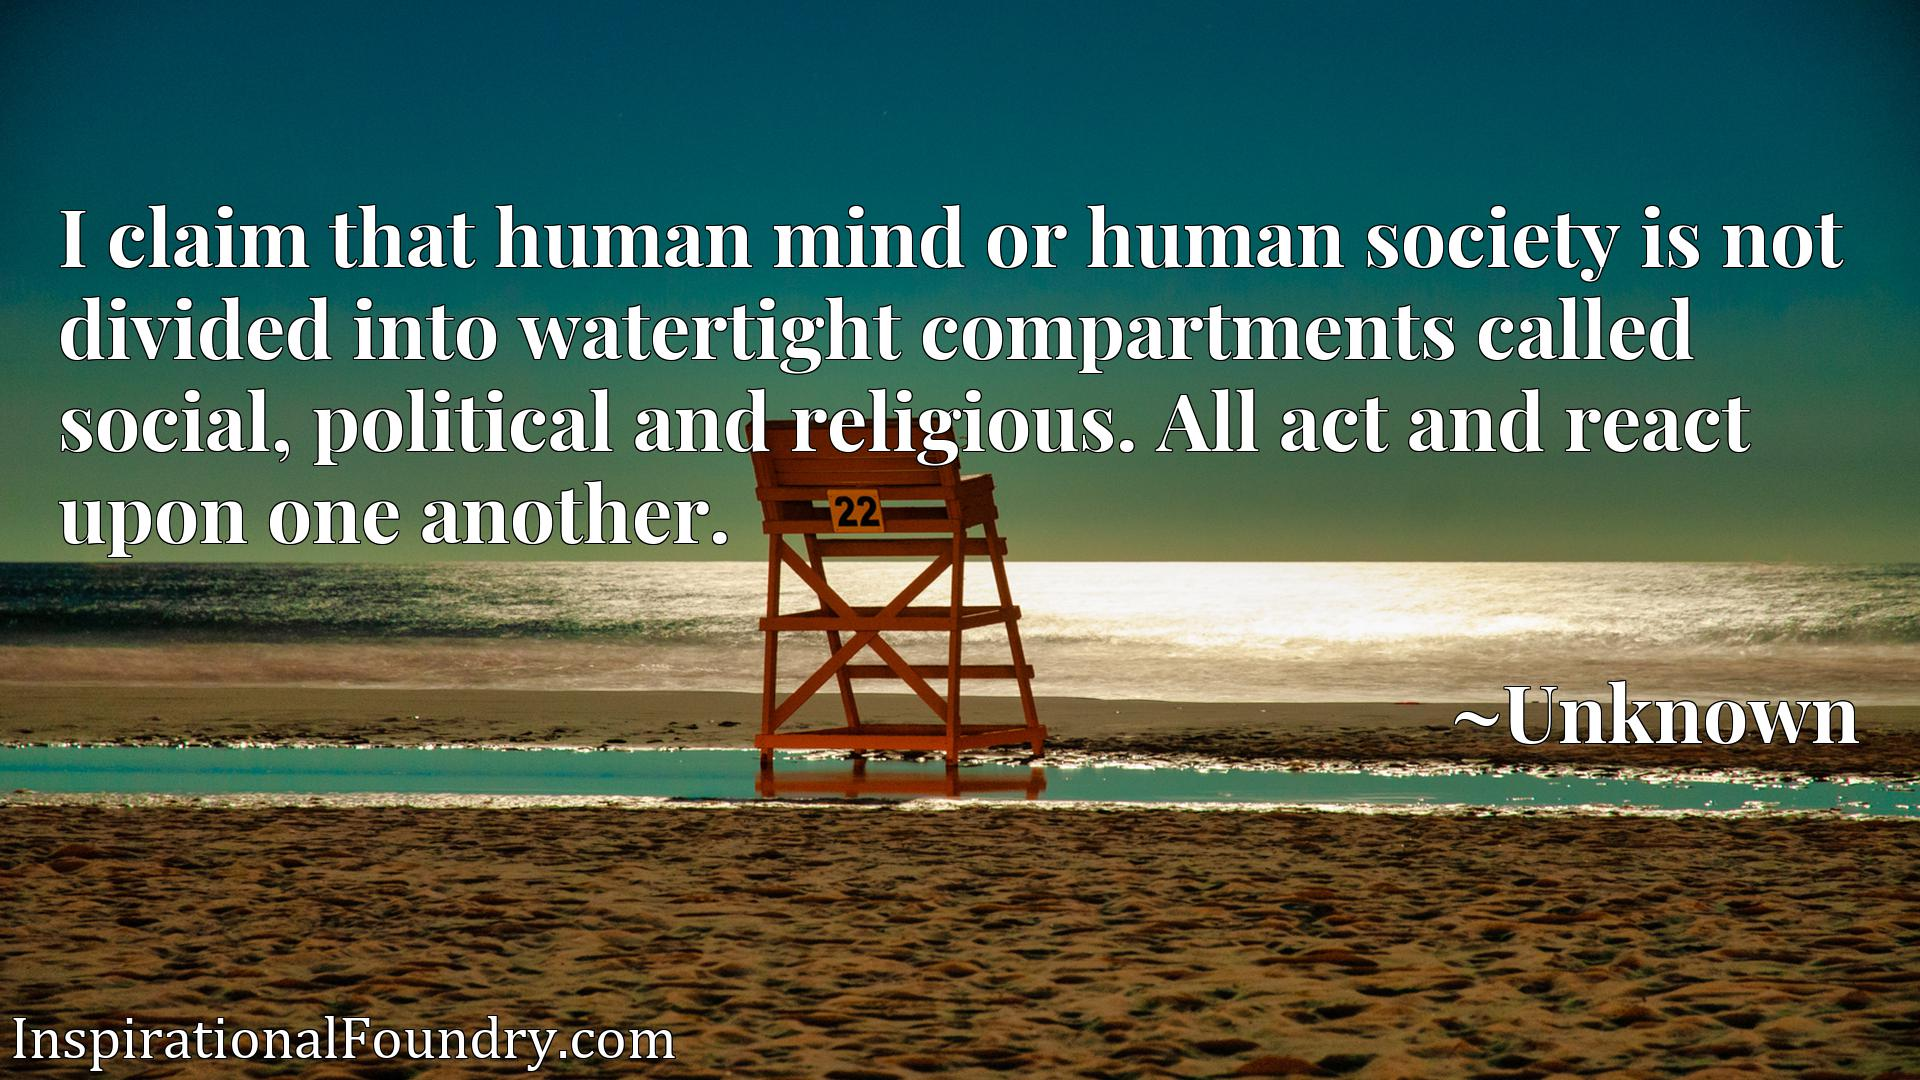 I claim that human mind or human society is not divided into watertight compartments called social, political and religious. All act and react upon one another.